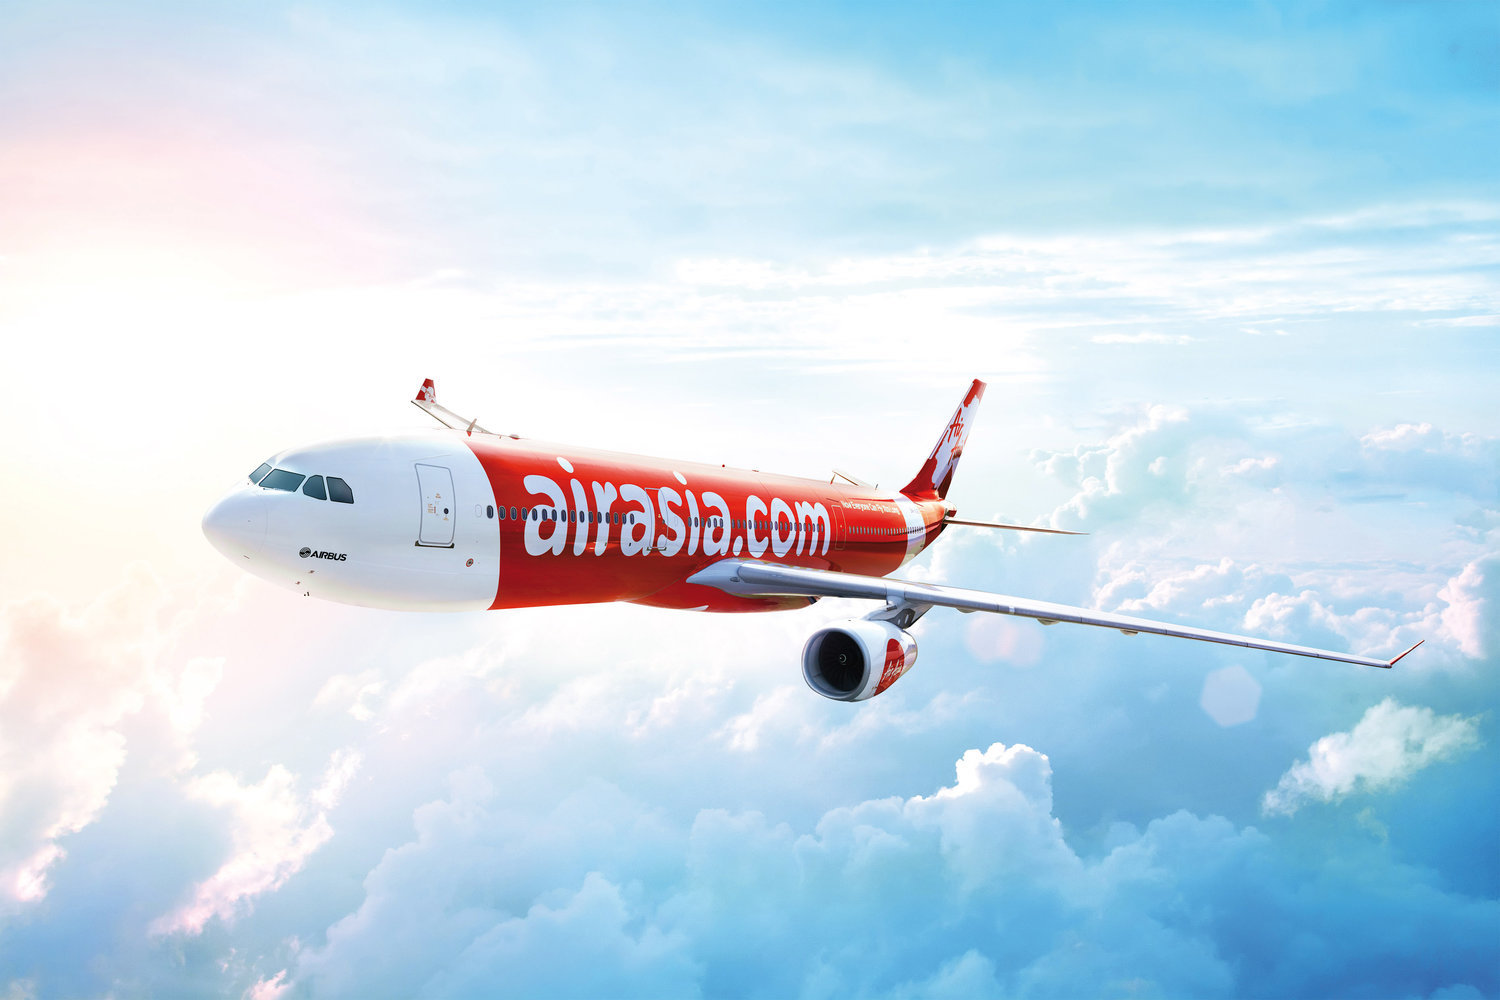 AirAsia Promotion - How to grab your low fares